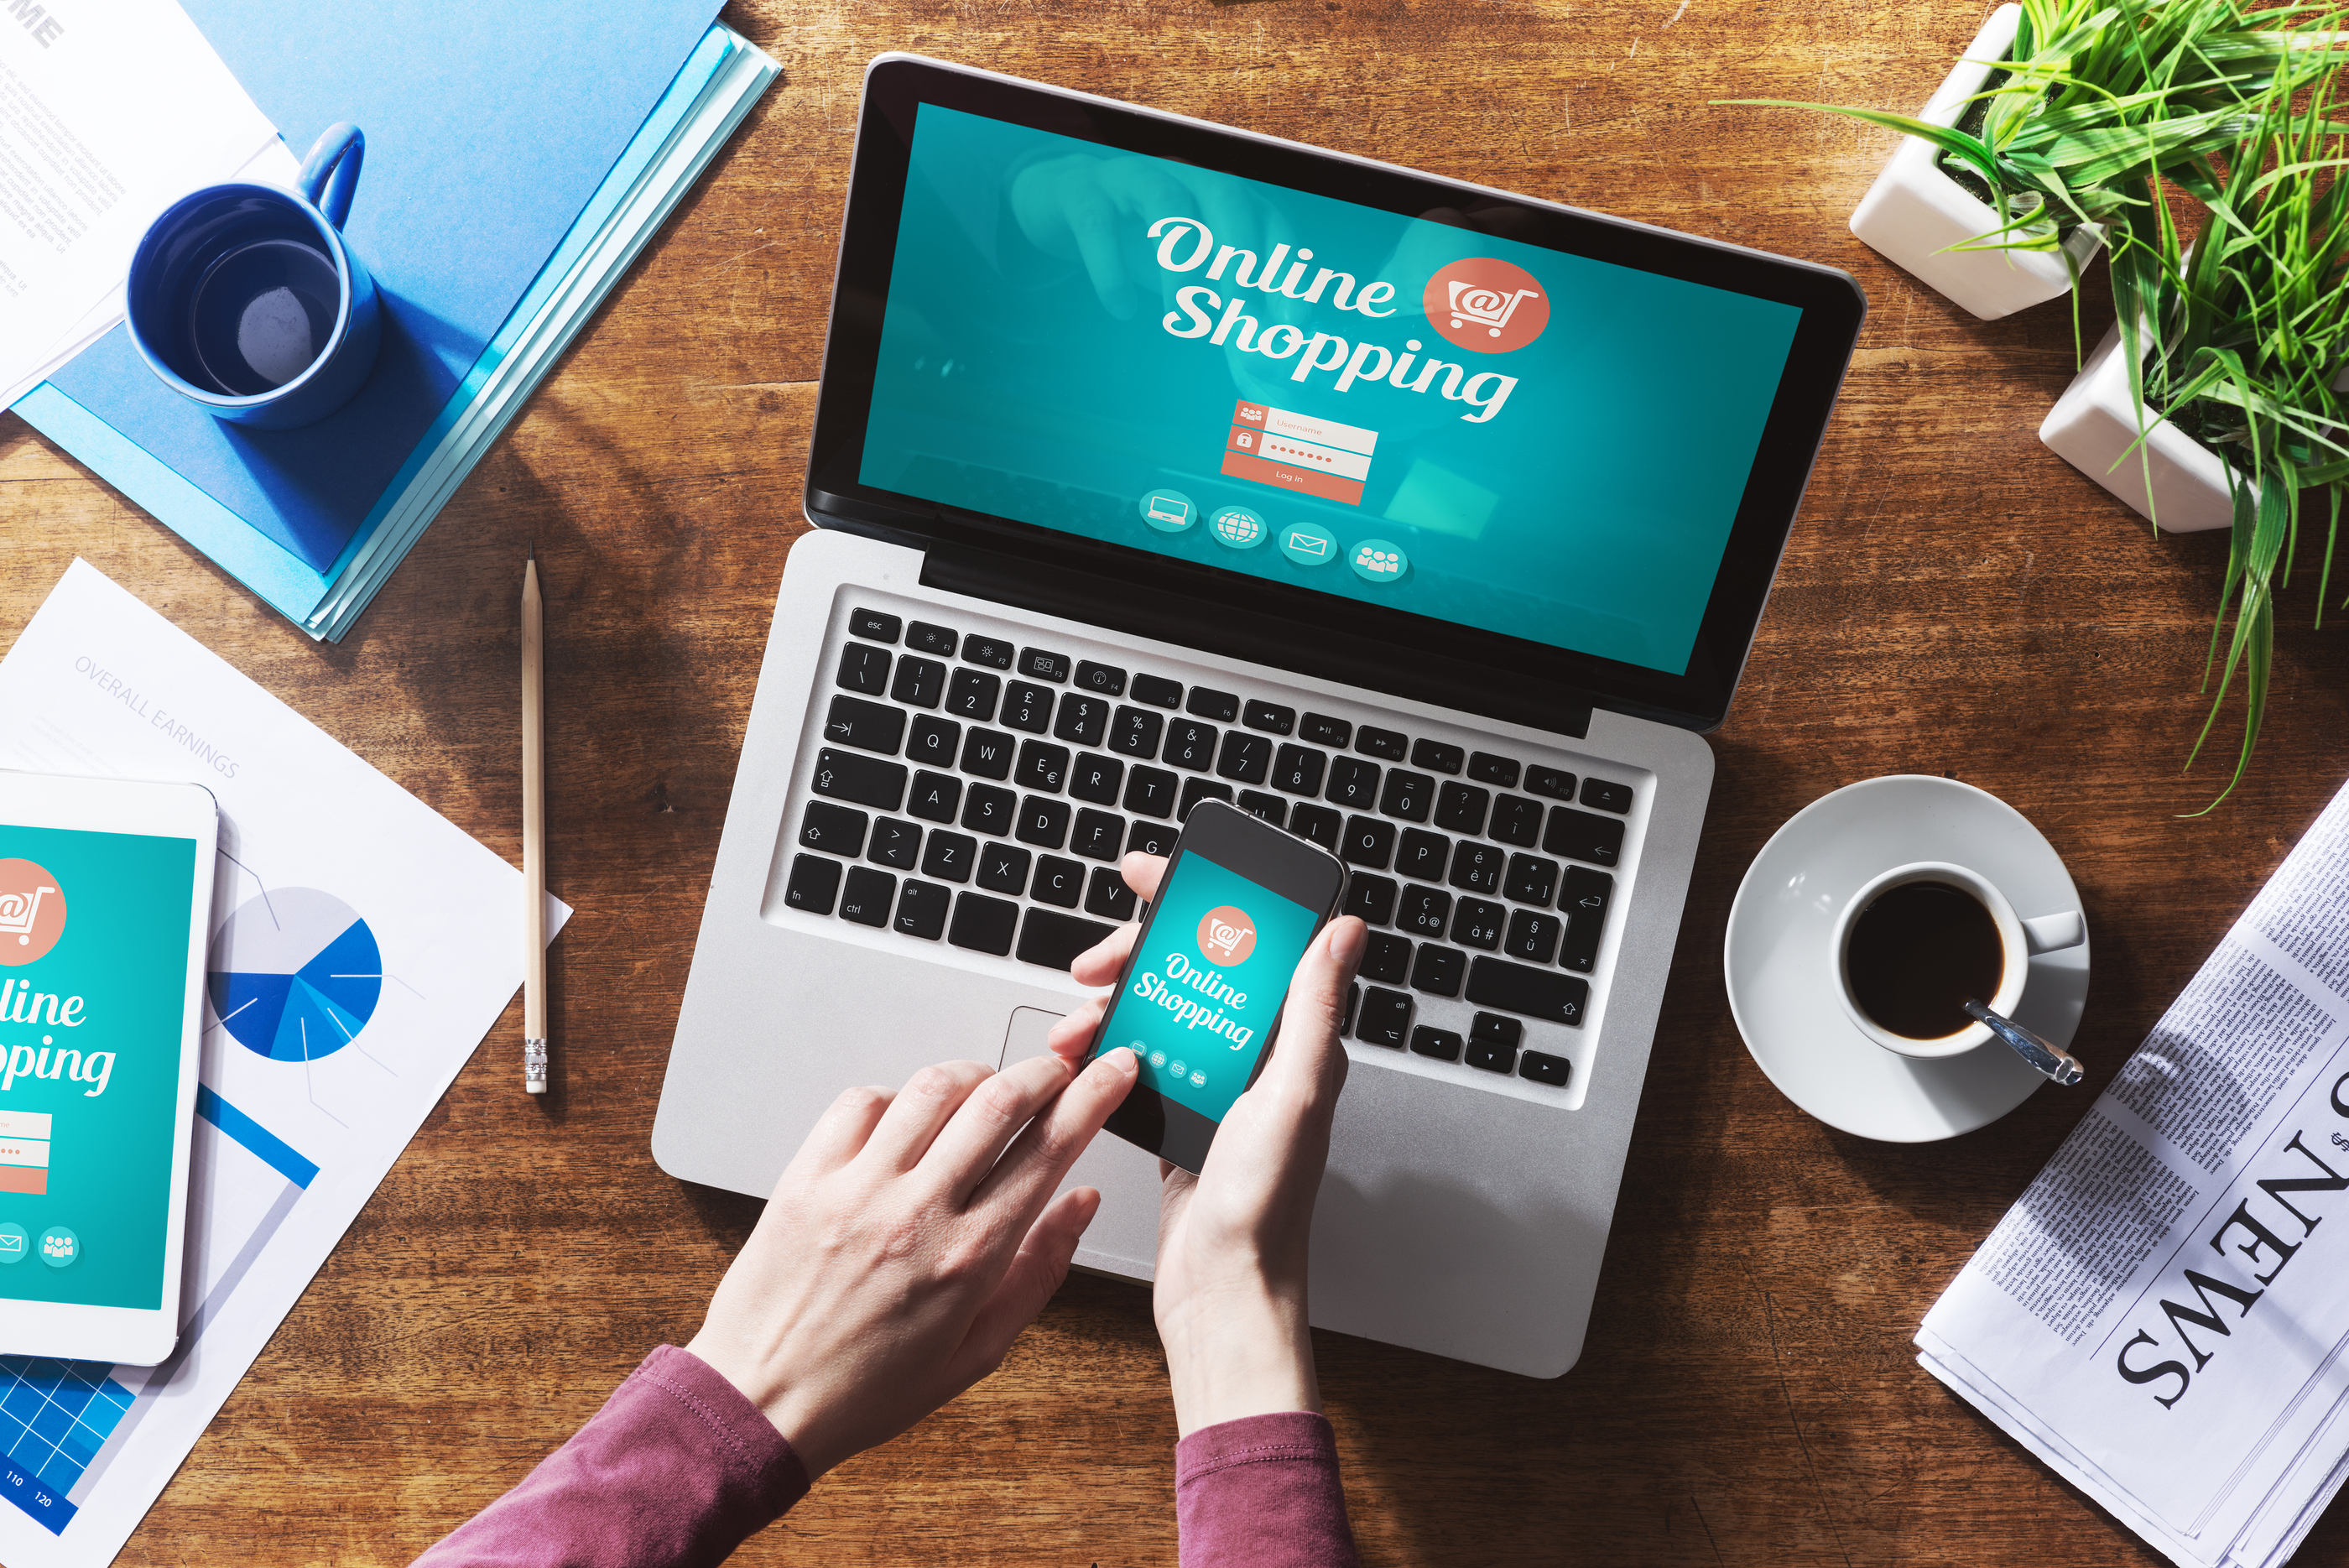 Online Shopping Tips Conduct research: When using a new website for purchases, read reviews and see if other consumers have had a positive or negative experience with the site. When in doubt, throw it out: Links in emails, posts and texts are often how cybercriminals try .